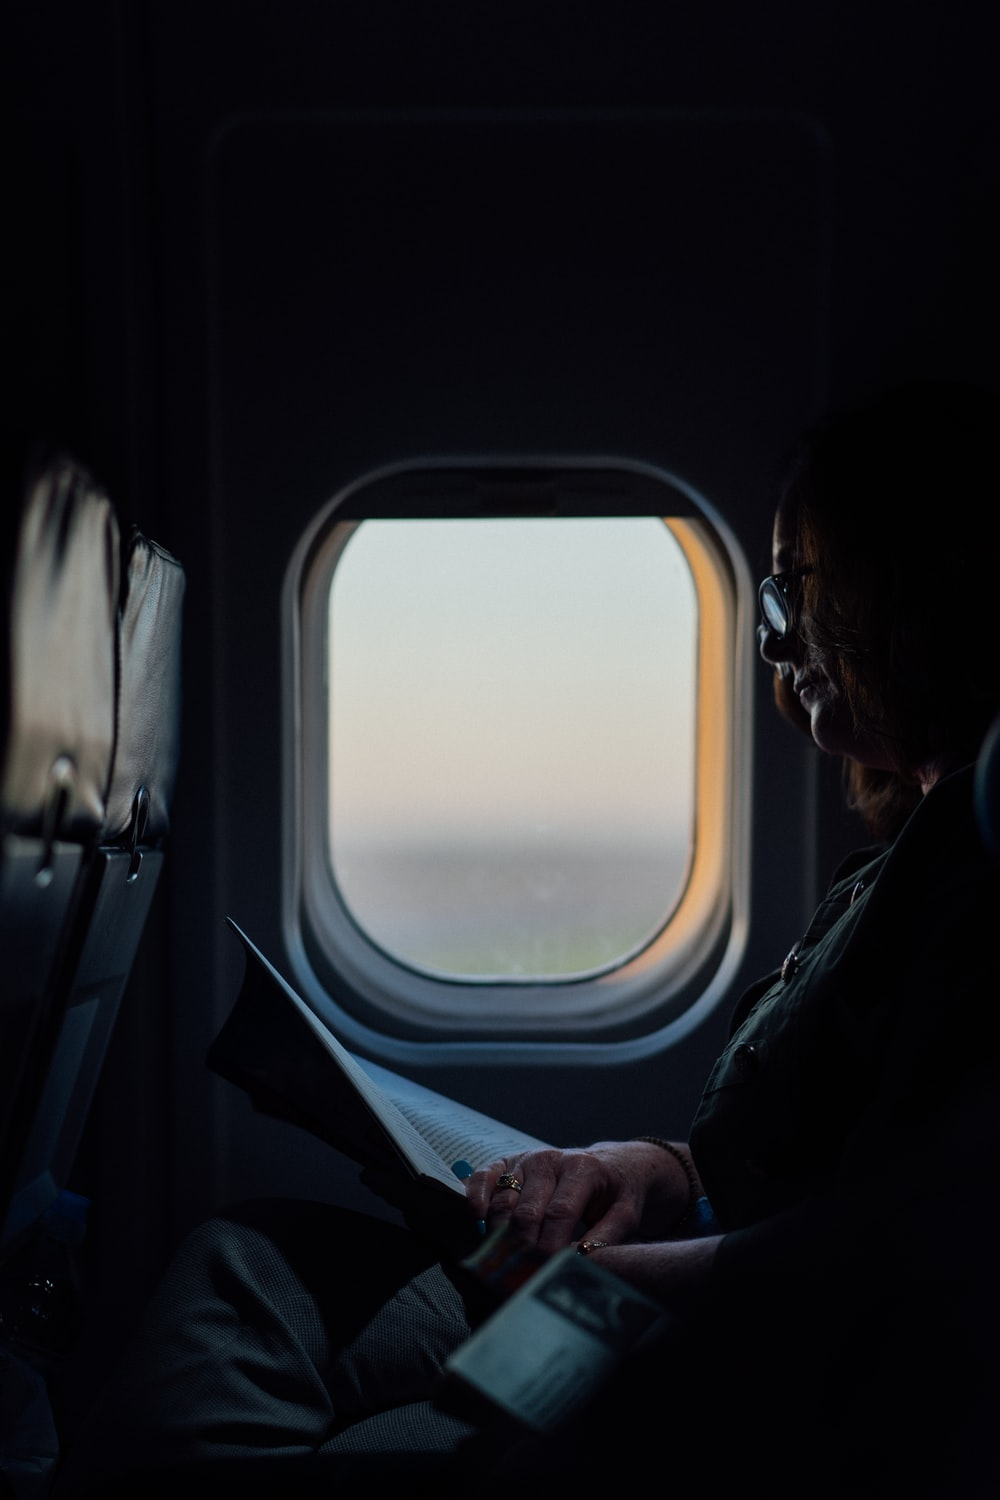 woman sitting and reading book on airliner